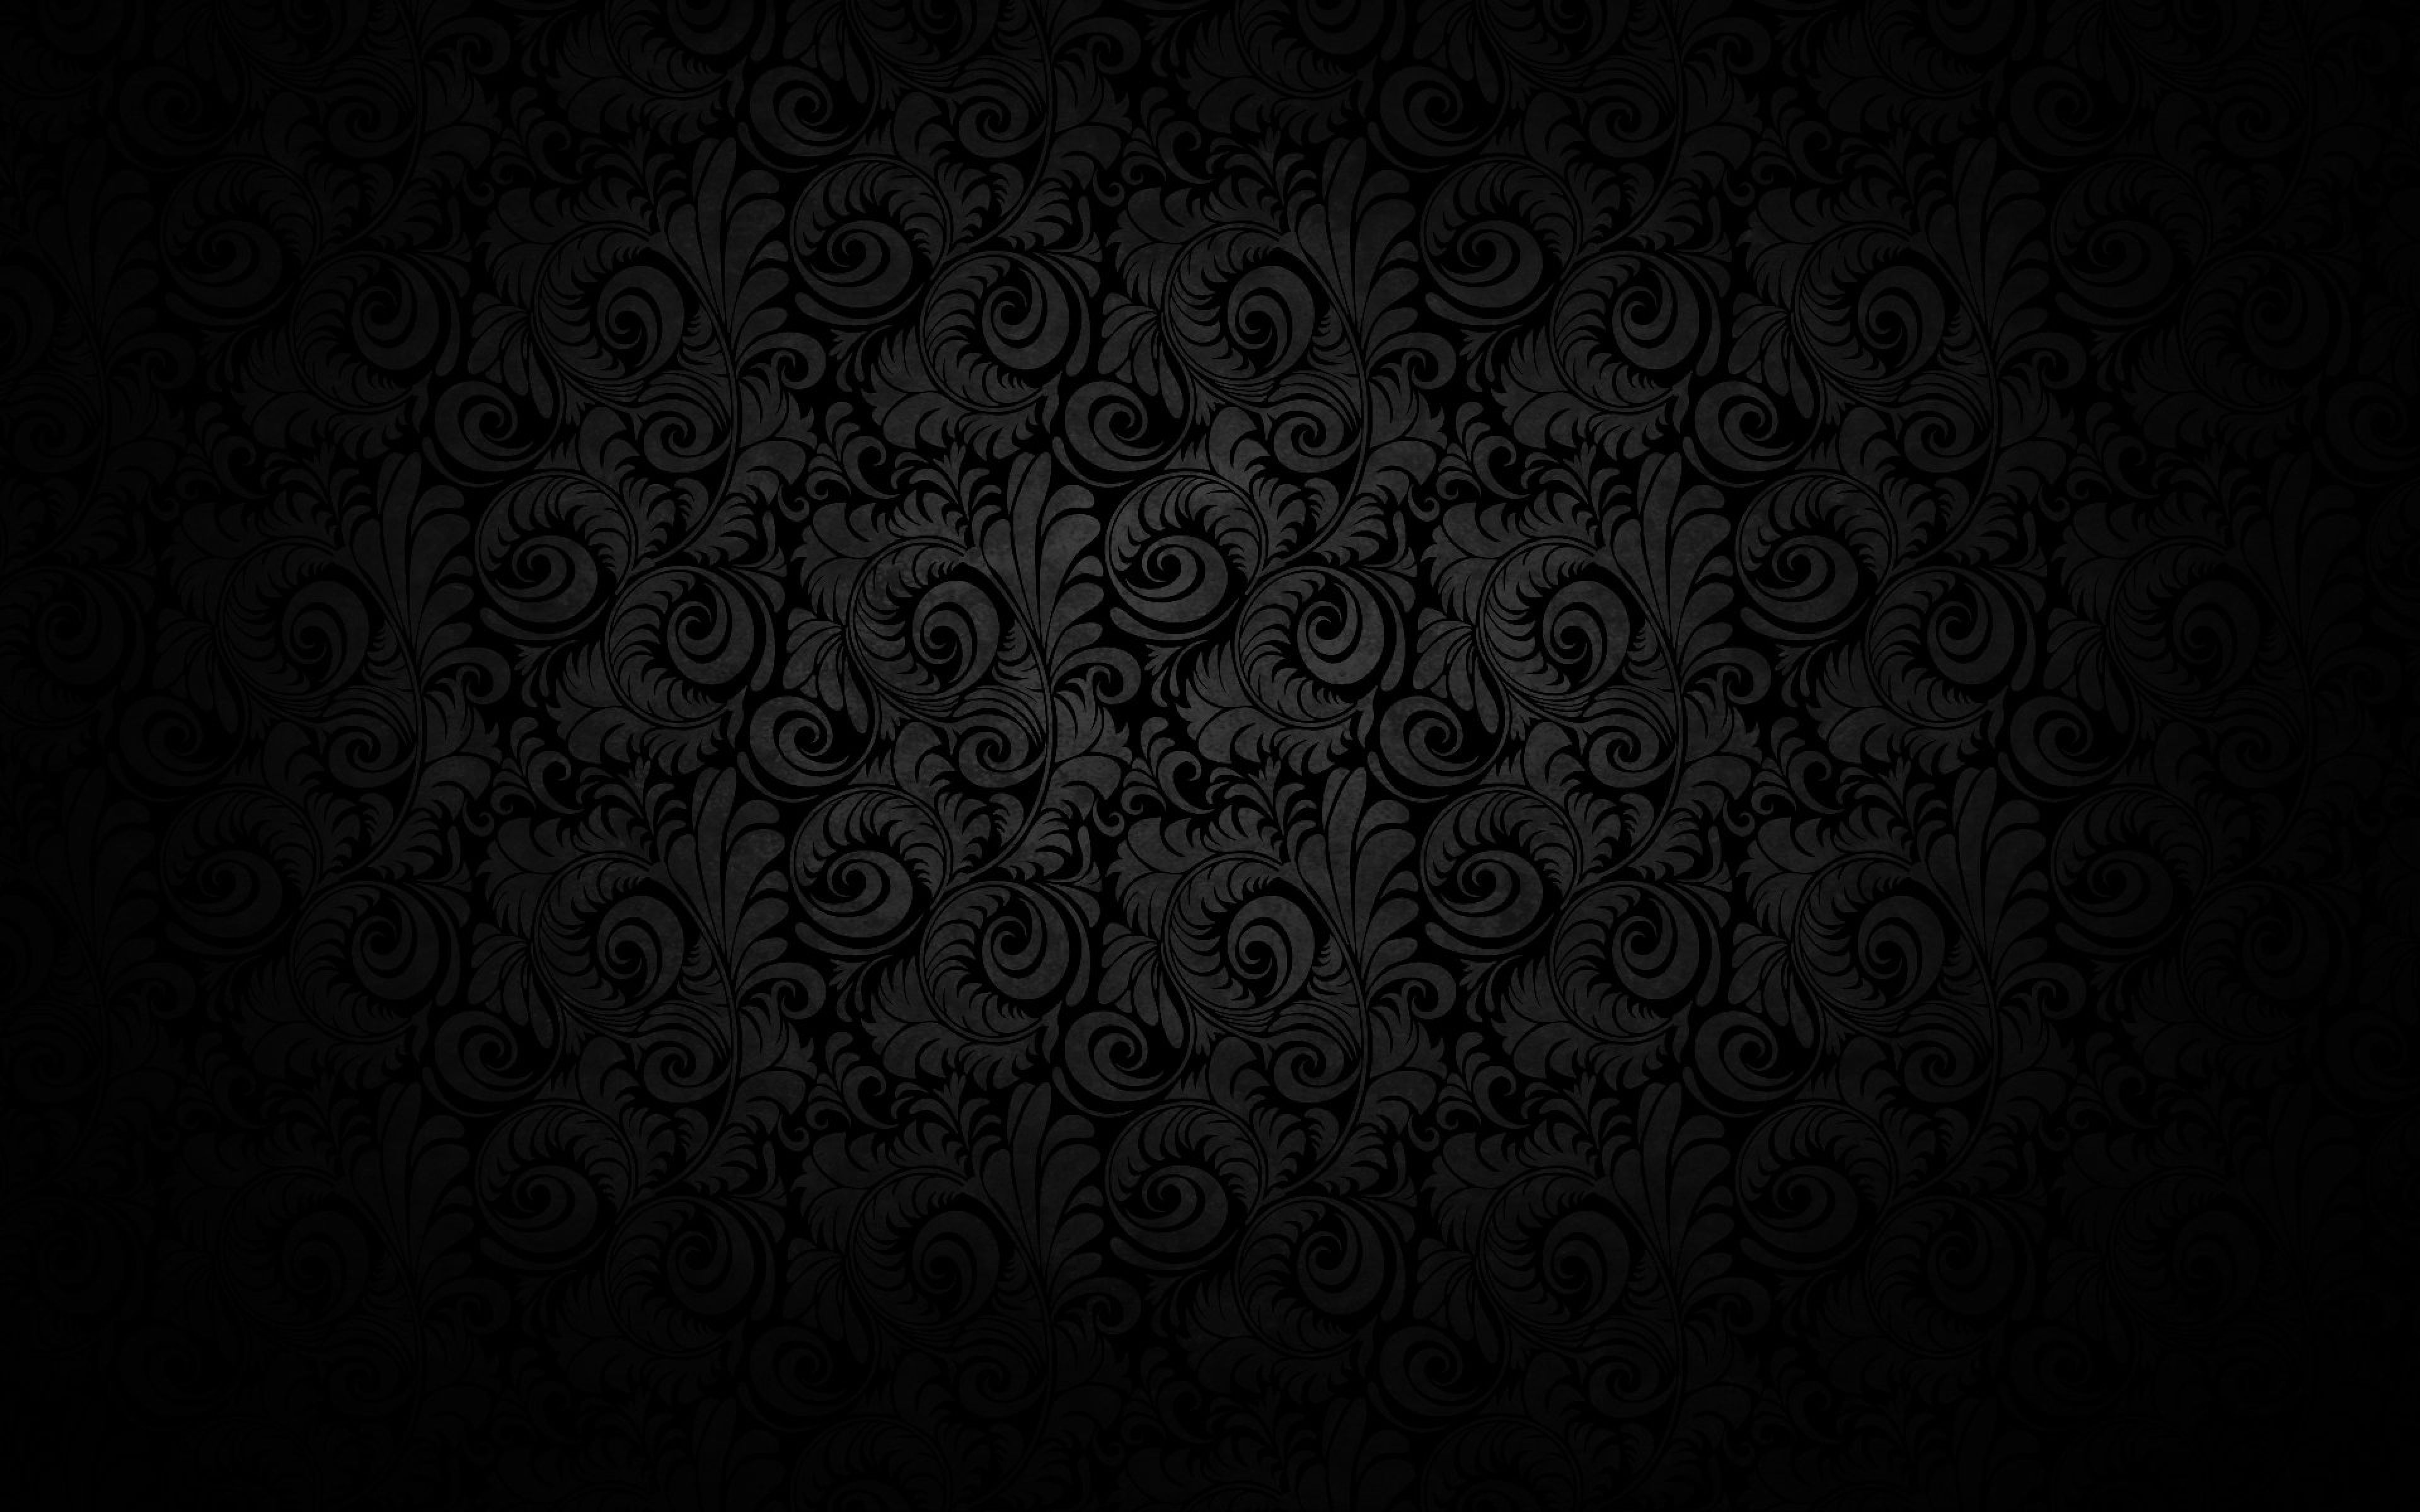 background pattern - Google Search | PATTERNS // BACKGROUND IMAGES | Pinterest | Background hd ...